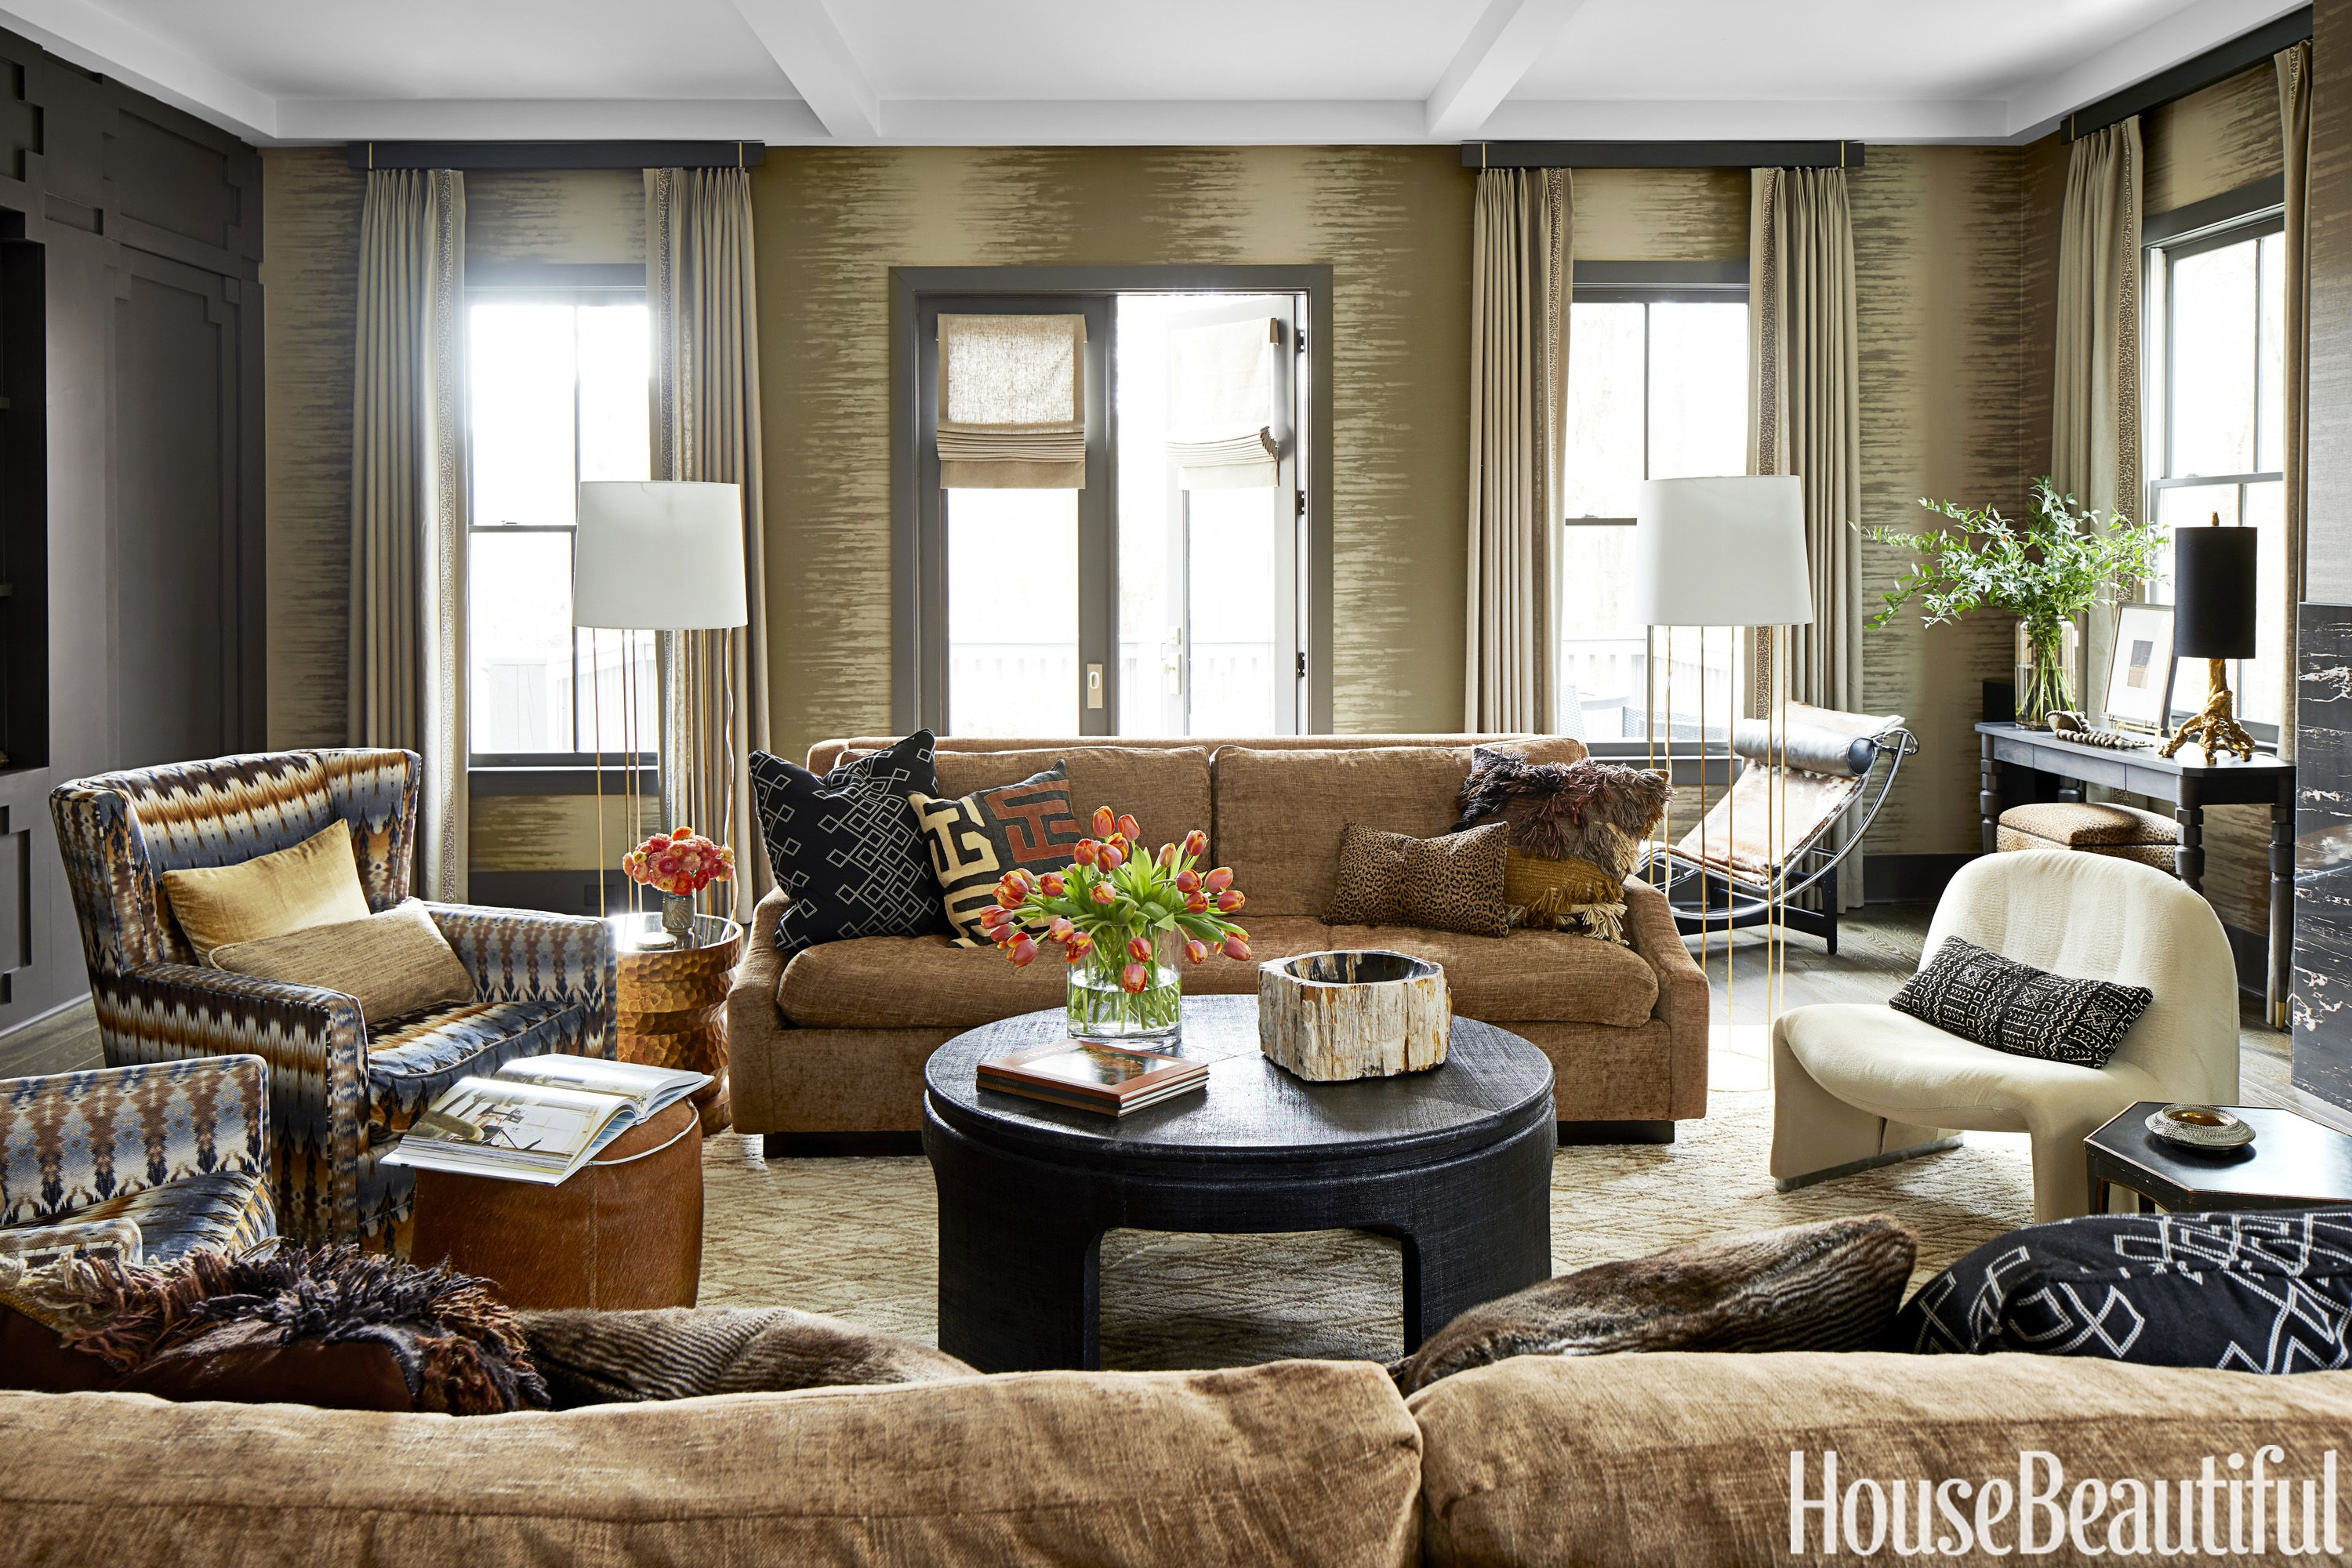 A groovy and tribal vibe cast a domino effect on this southern home kristin kong interview